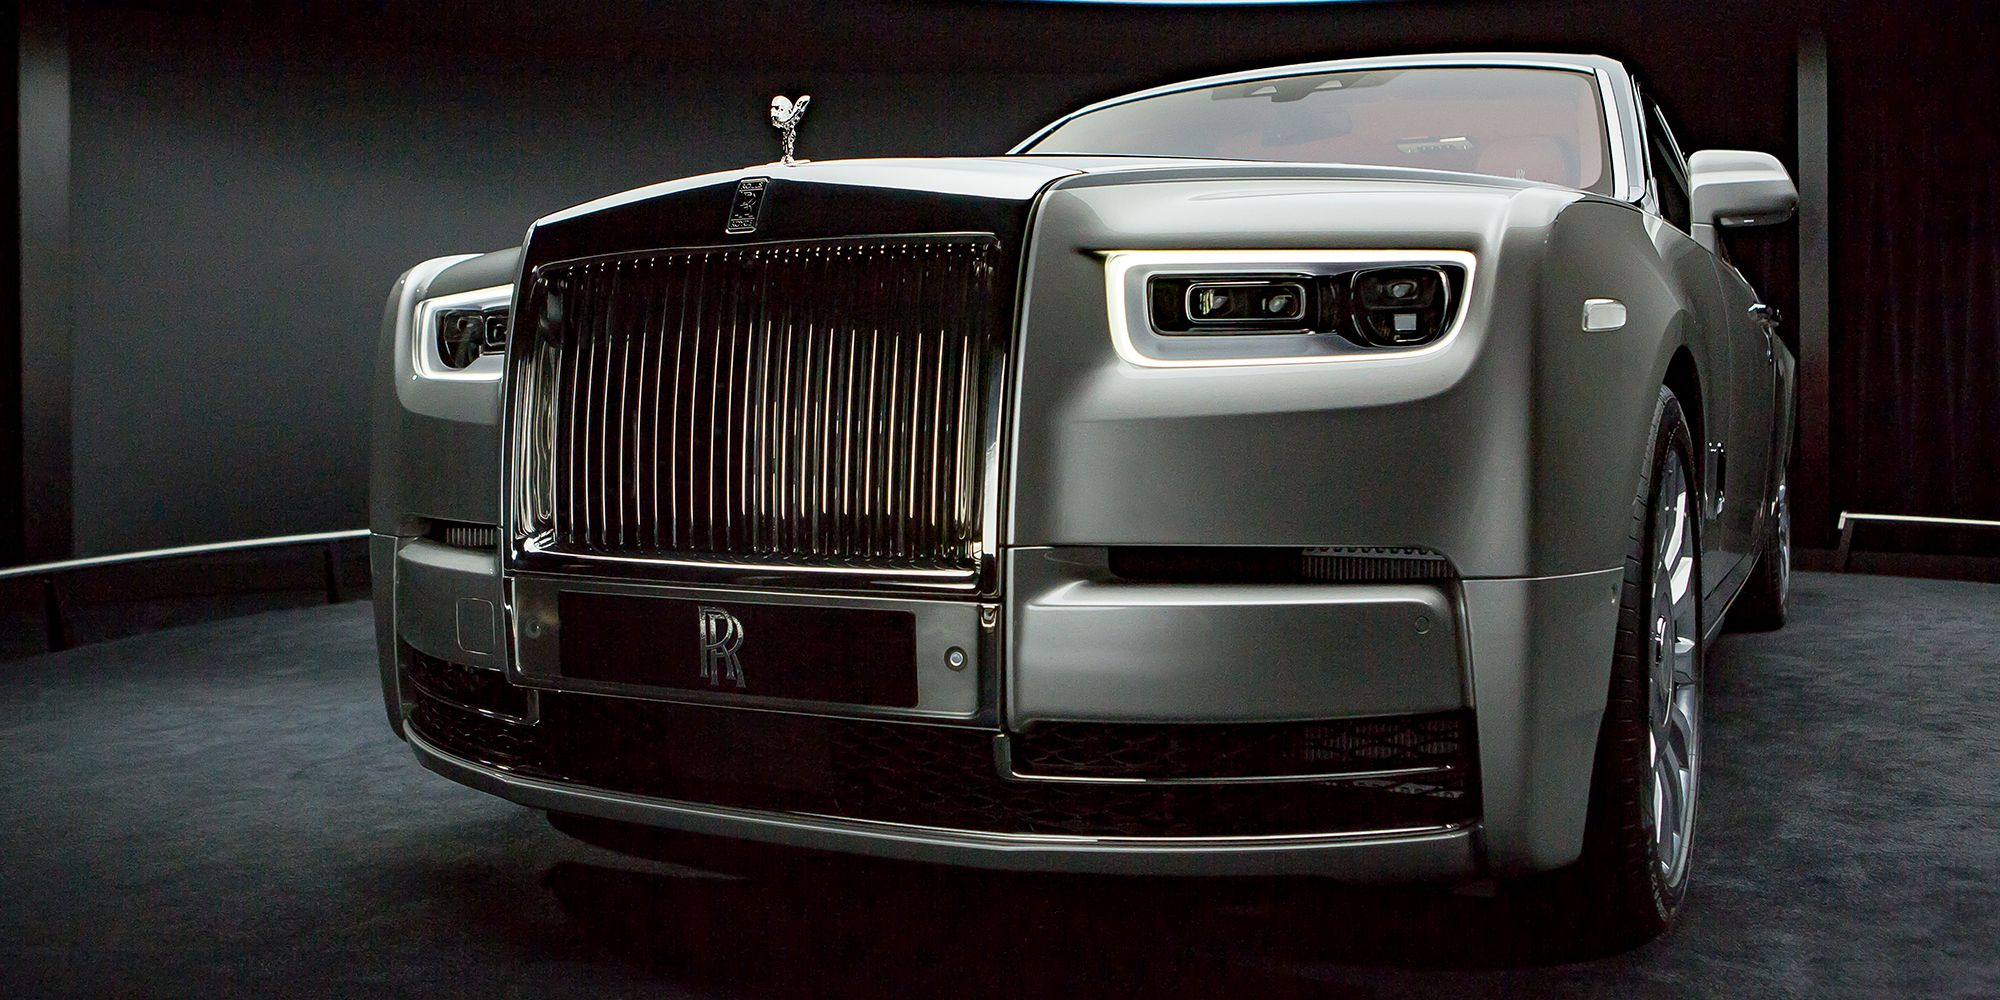 The New Rolls Royce Phantom Is Exactly As Opulent As You Hoped